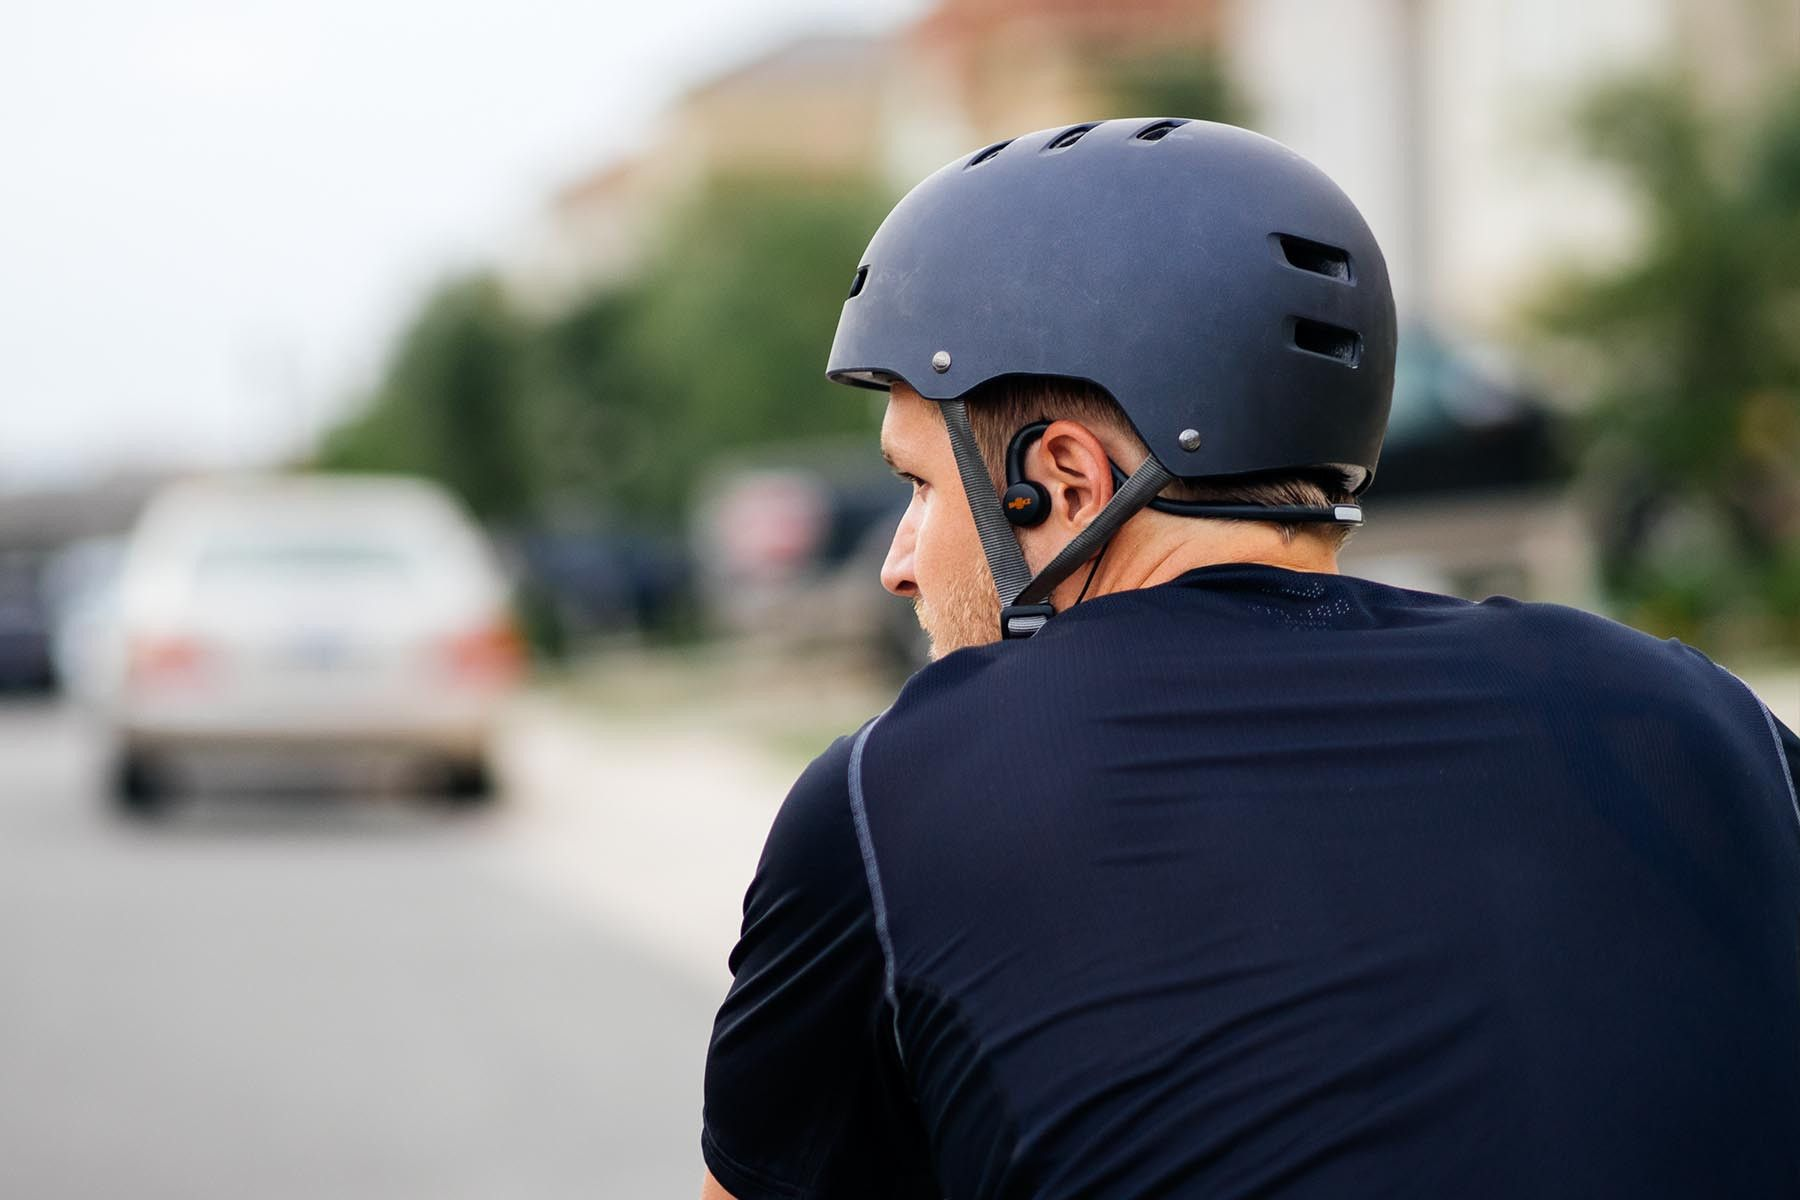 Man cycling down a street wearing Sports M 3 bone conduction wired headphones under his safety helmet.